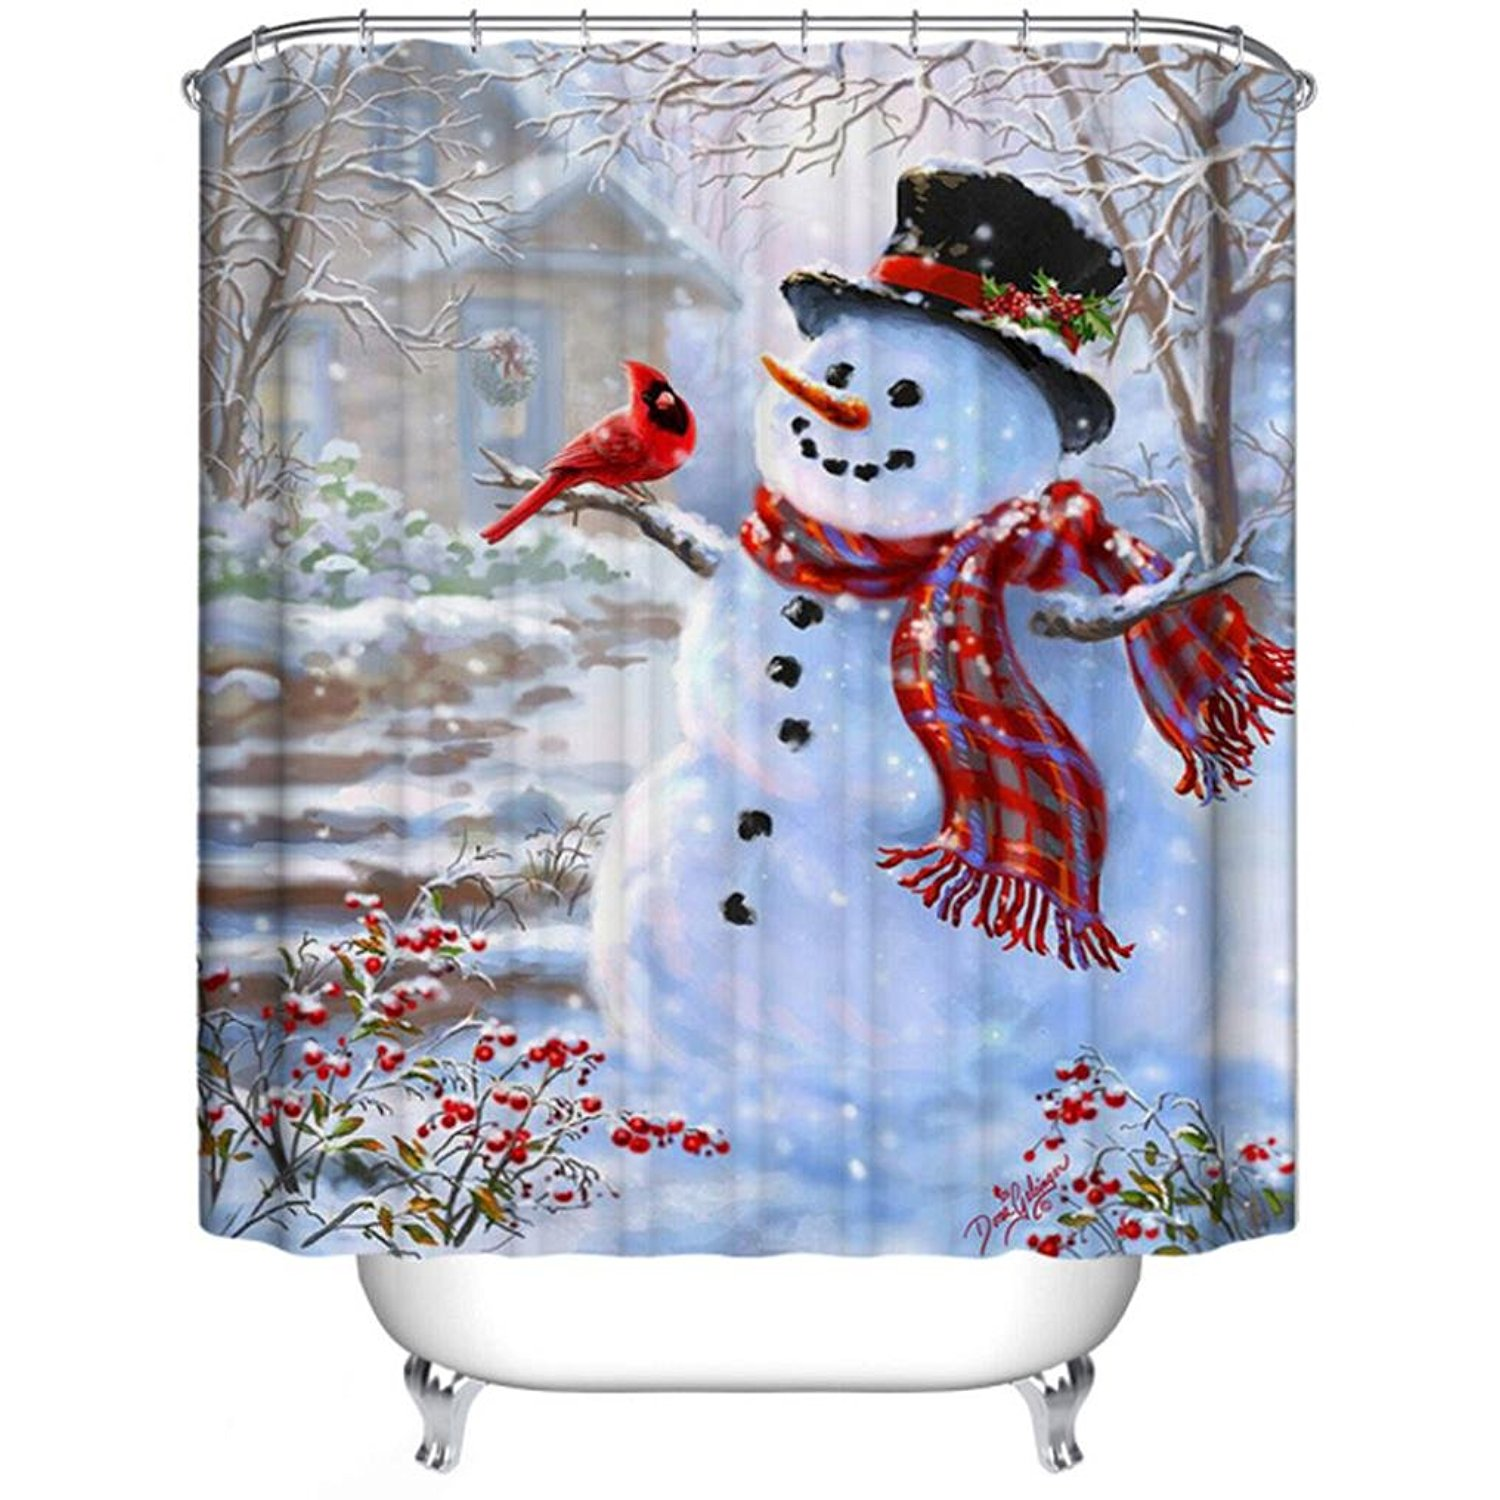 Us 15 03 28 Off Charmhome Winter Holiday Merry Christmas Happy Snowman And Cardinals Shower Curtain Waterproof Polyester Fabric Bath Curtain In